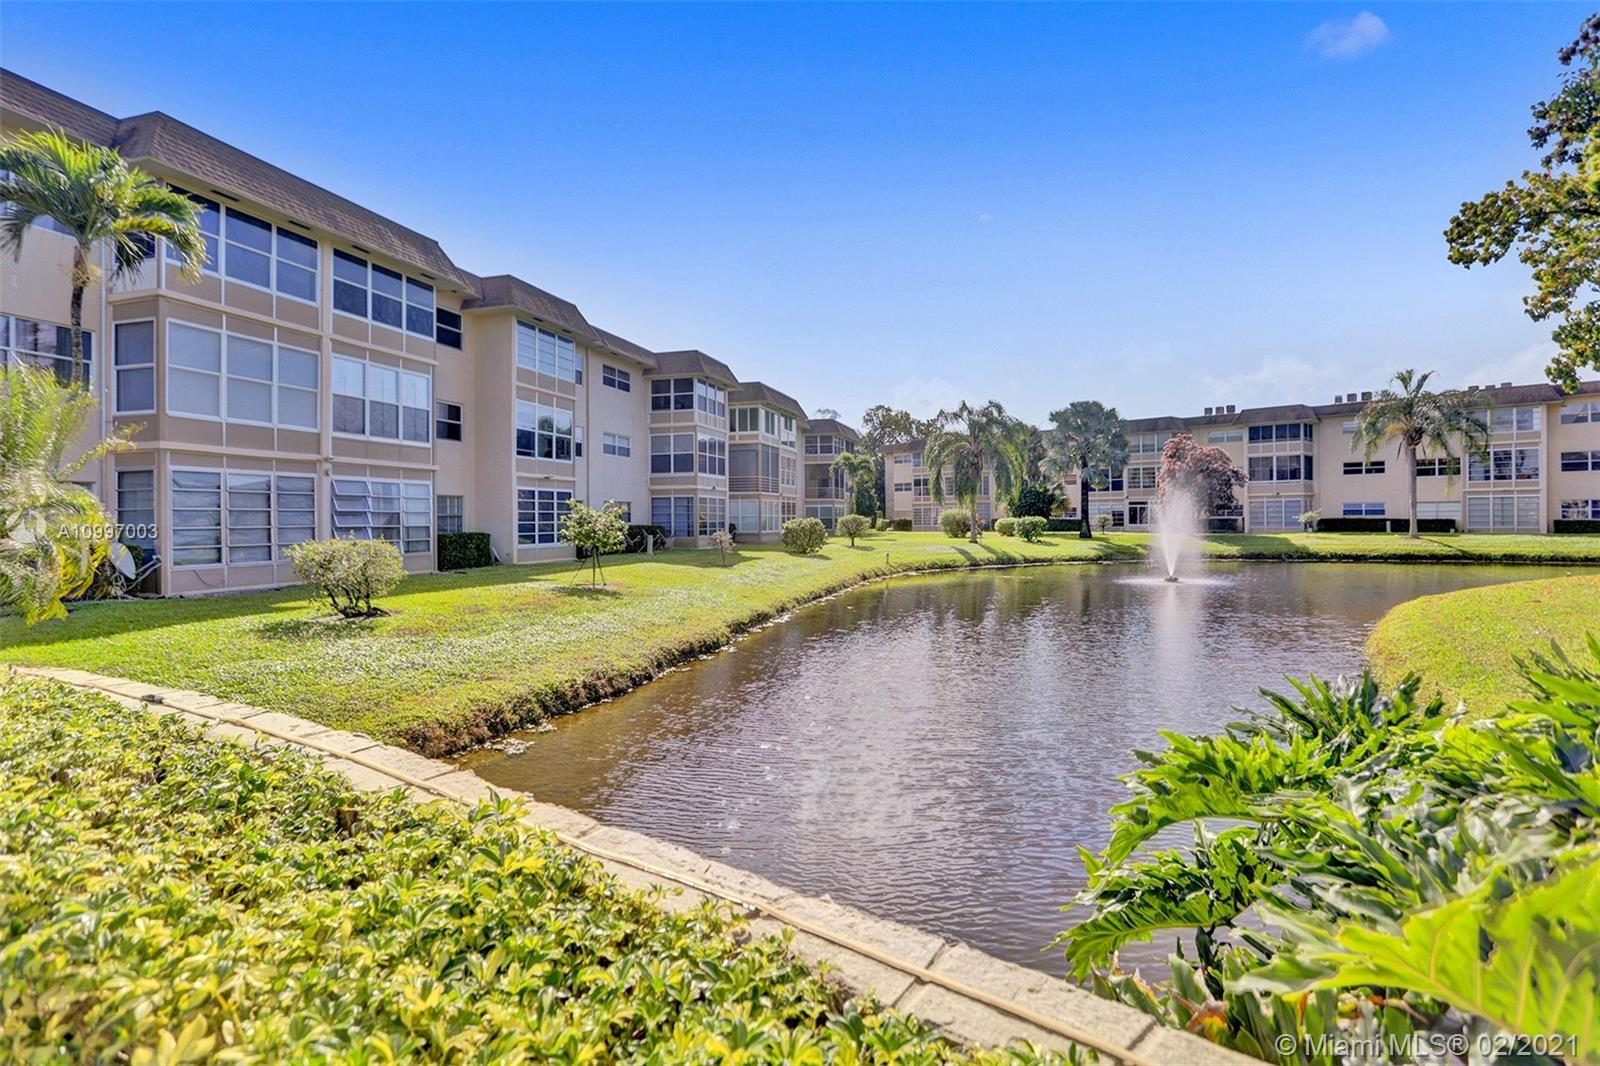 Beautiful corner unit with lake view, fully furnished third  floor. Large Florida room with view on the lake and pool area. internet is included in the maintenance fees. This Hopa community offers pool shuffleboard, community room, laundry room, extra storage, gym. Close to turnpike, grocery store, restaurants.